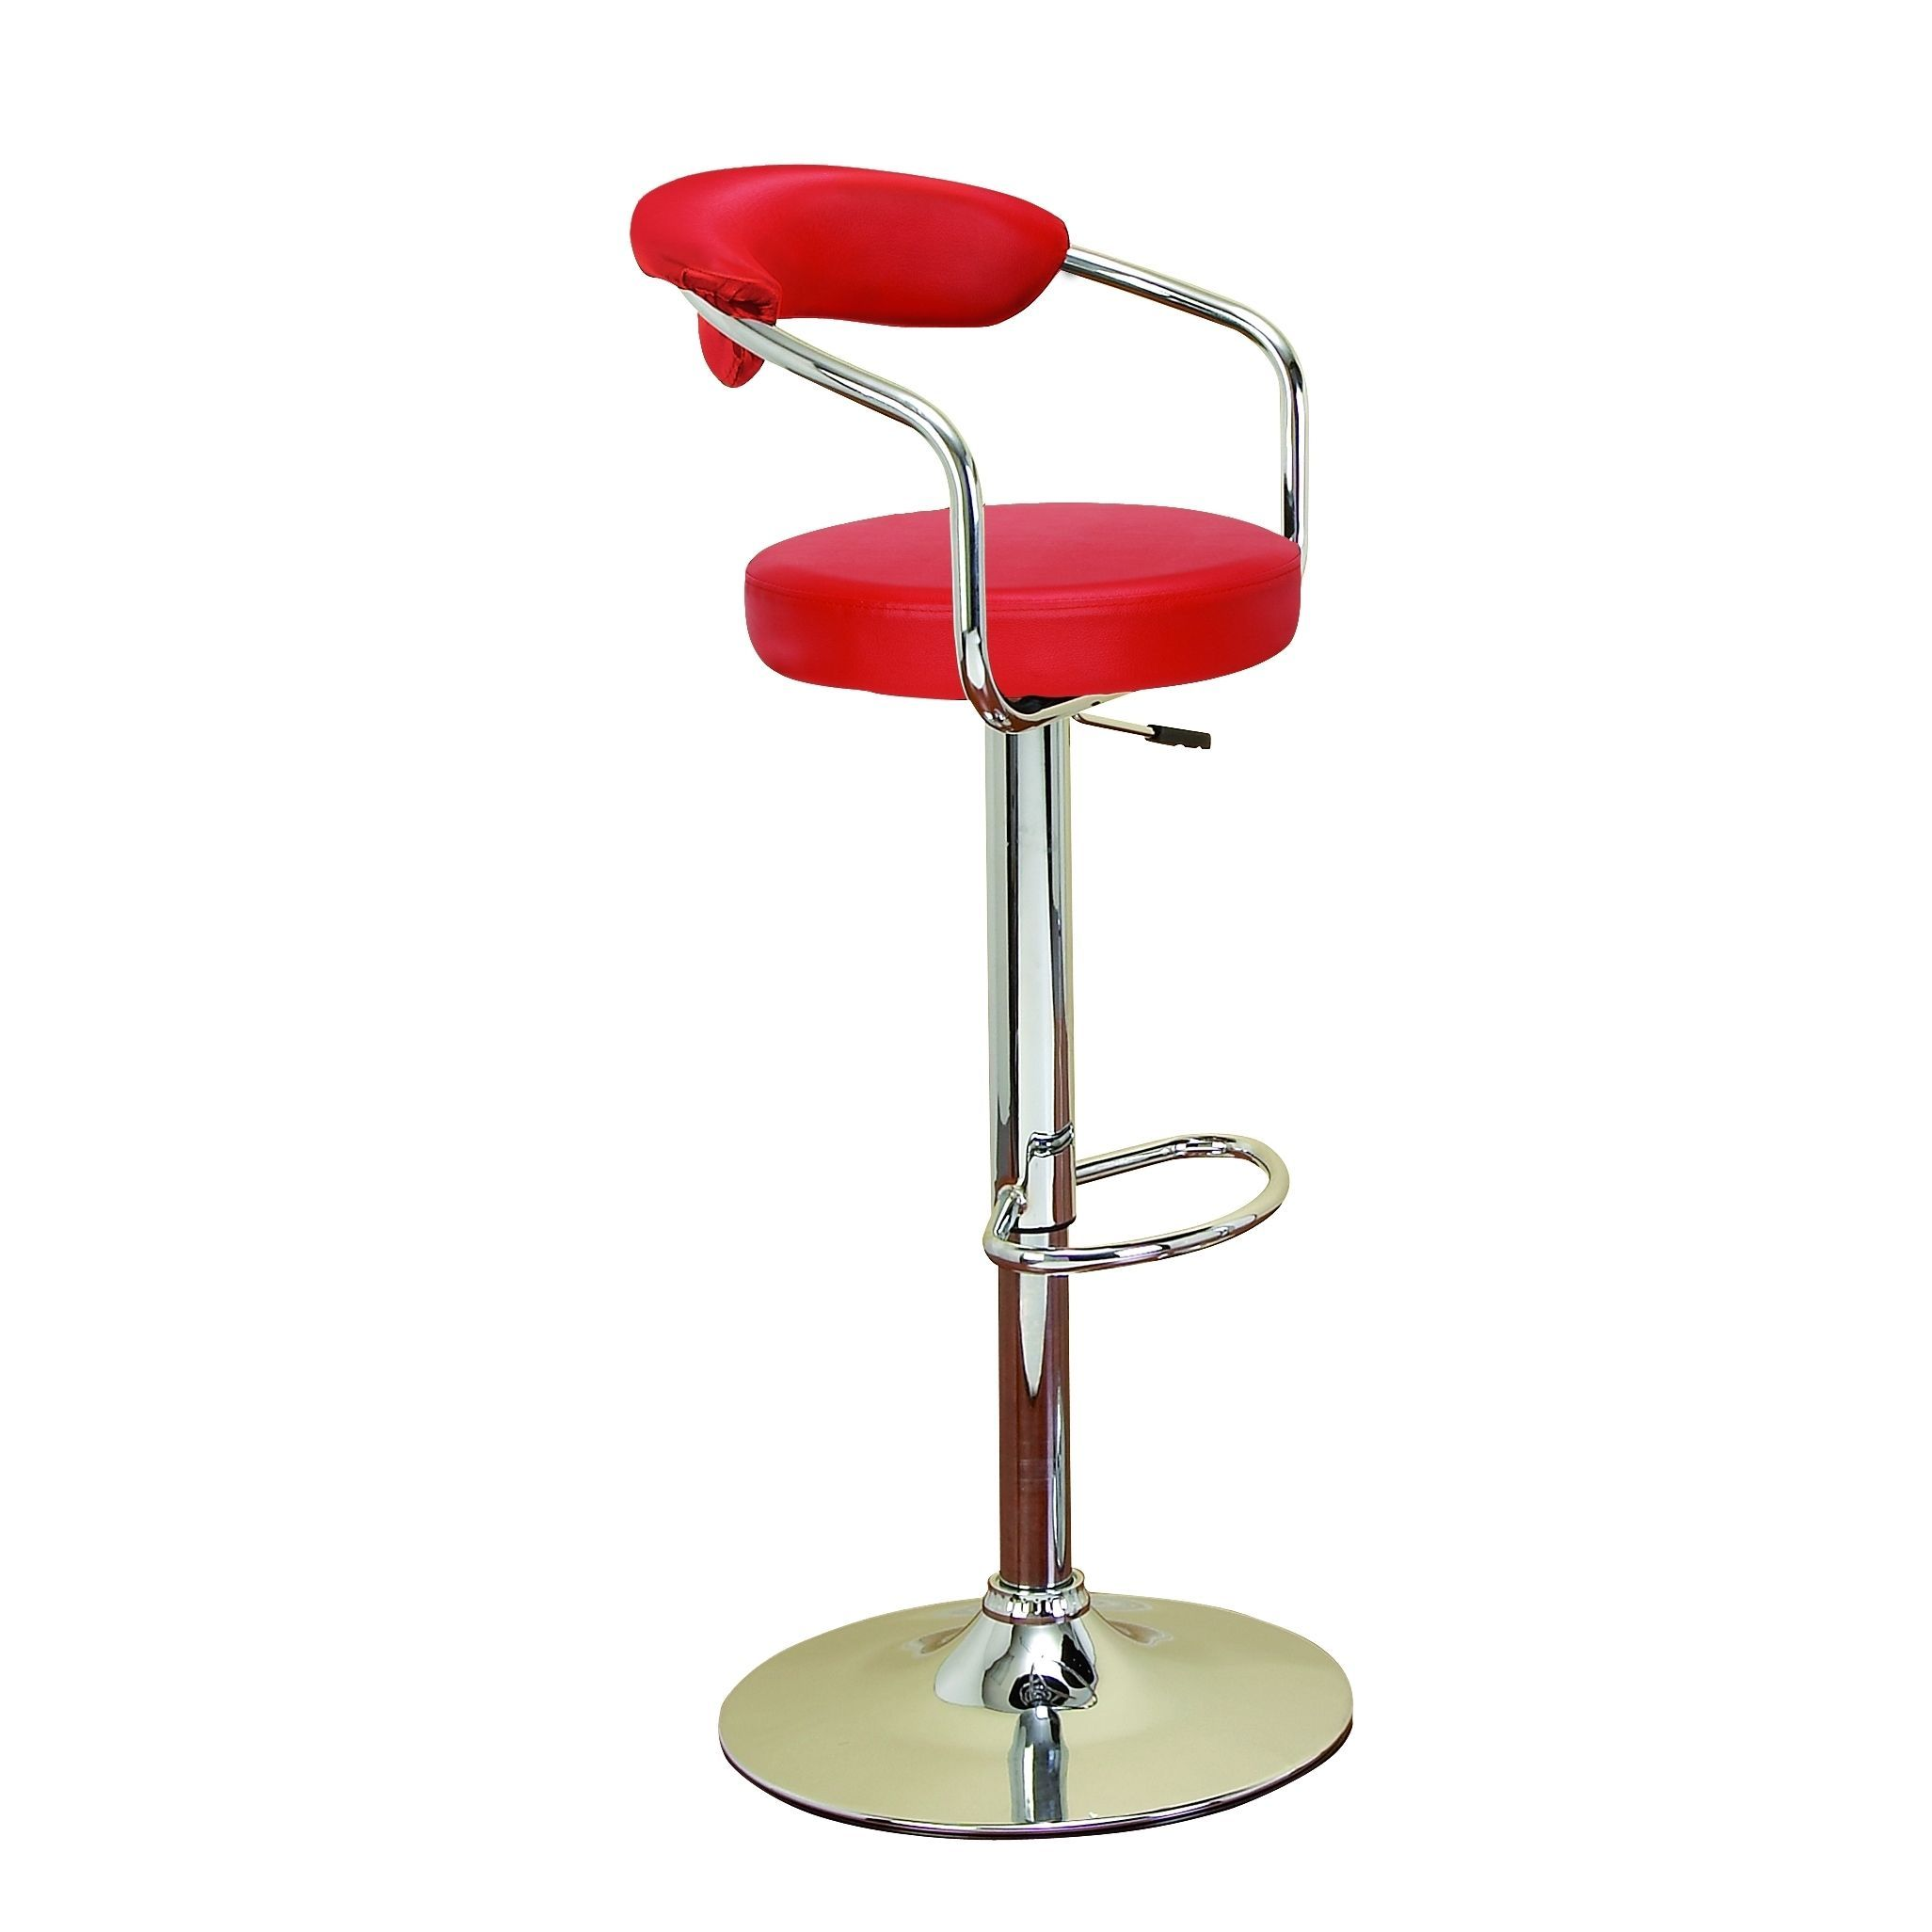 Chrome Vinyl Bar Chair For Stylish Bar Seating Chair Red Metal